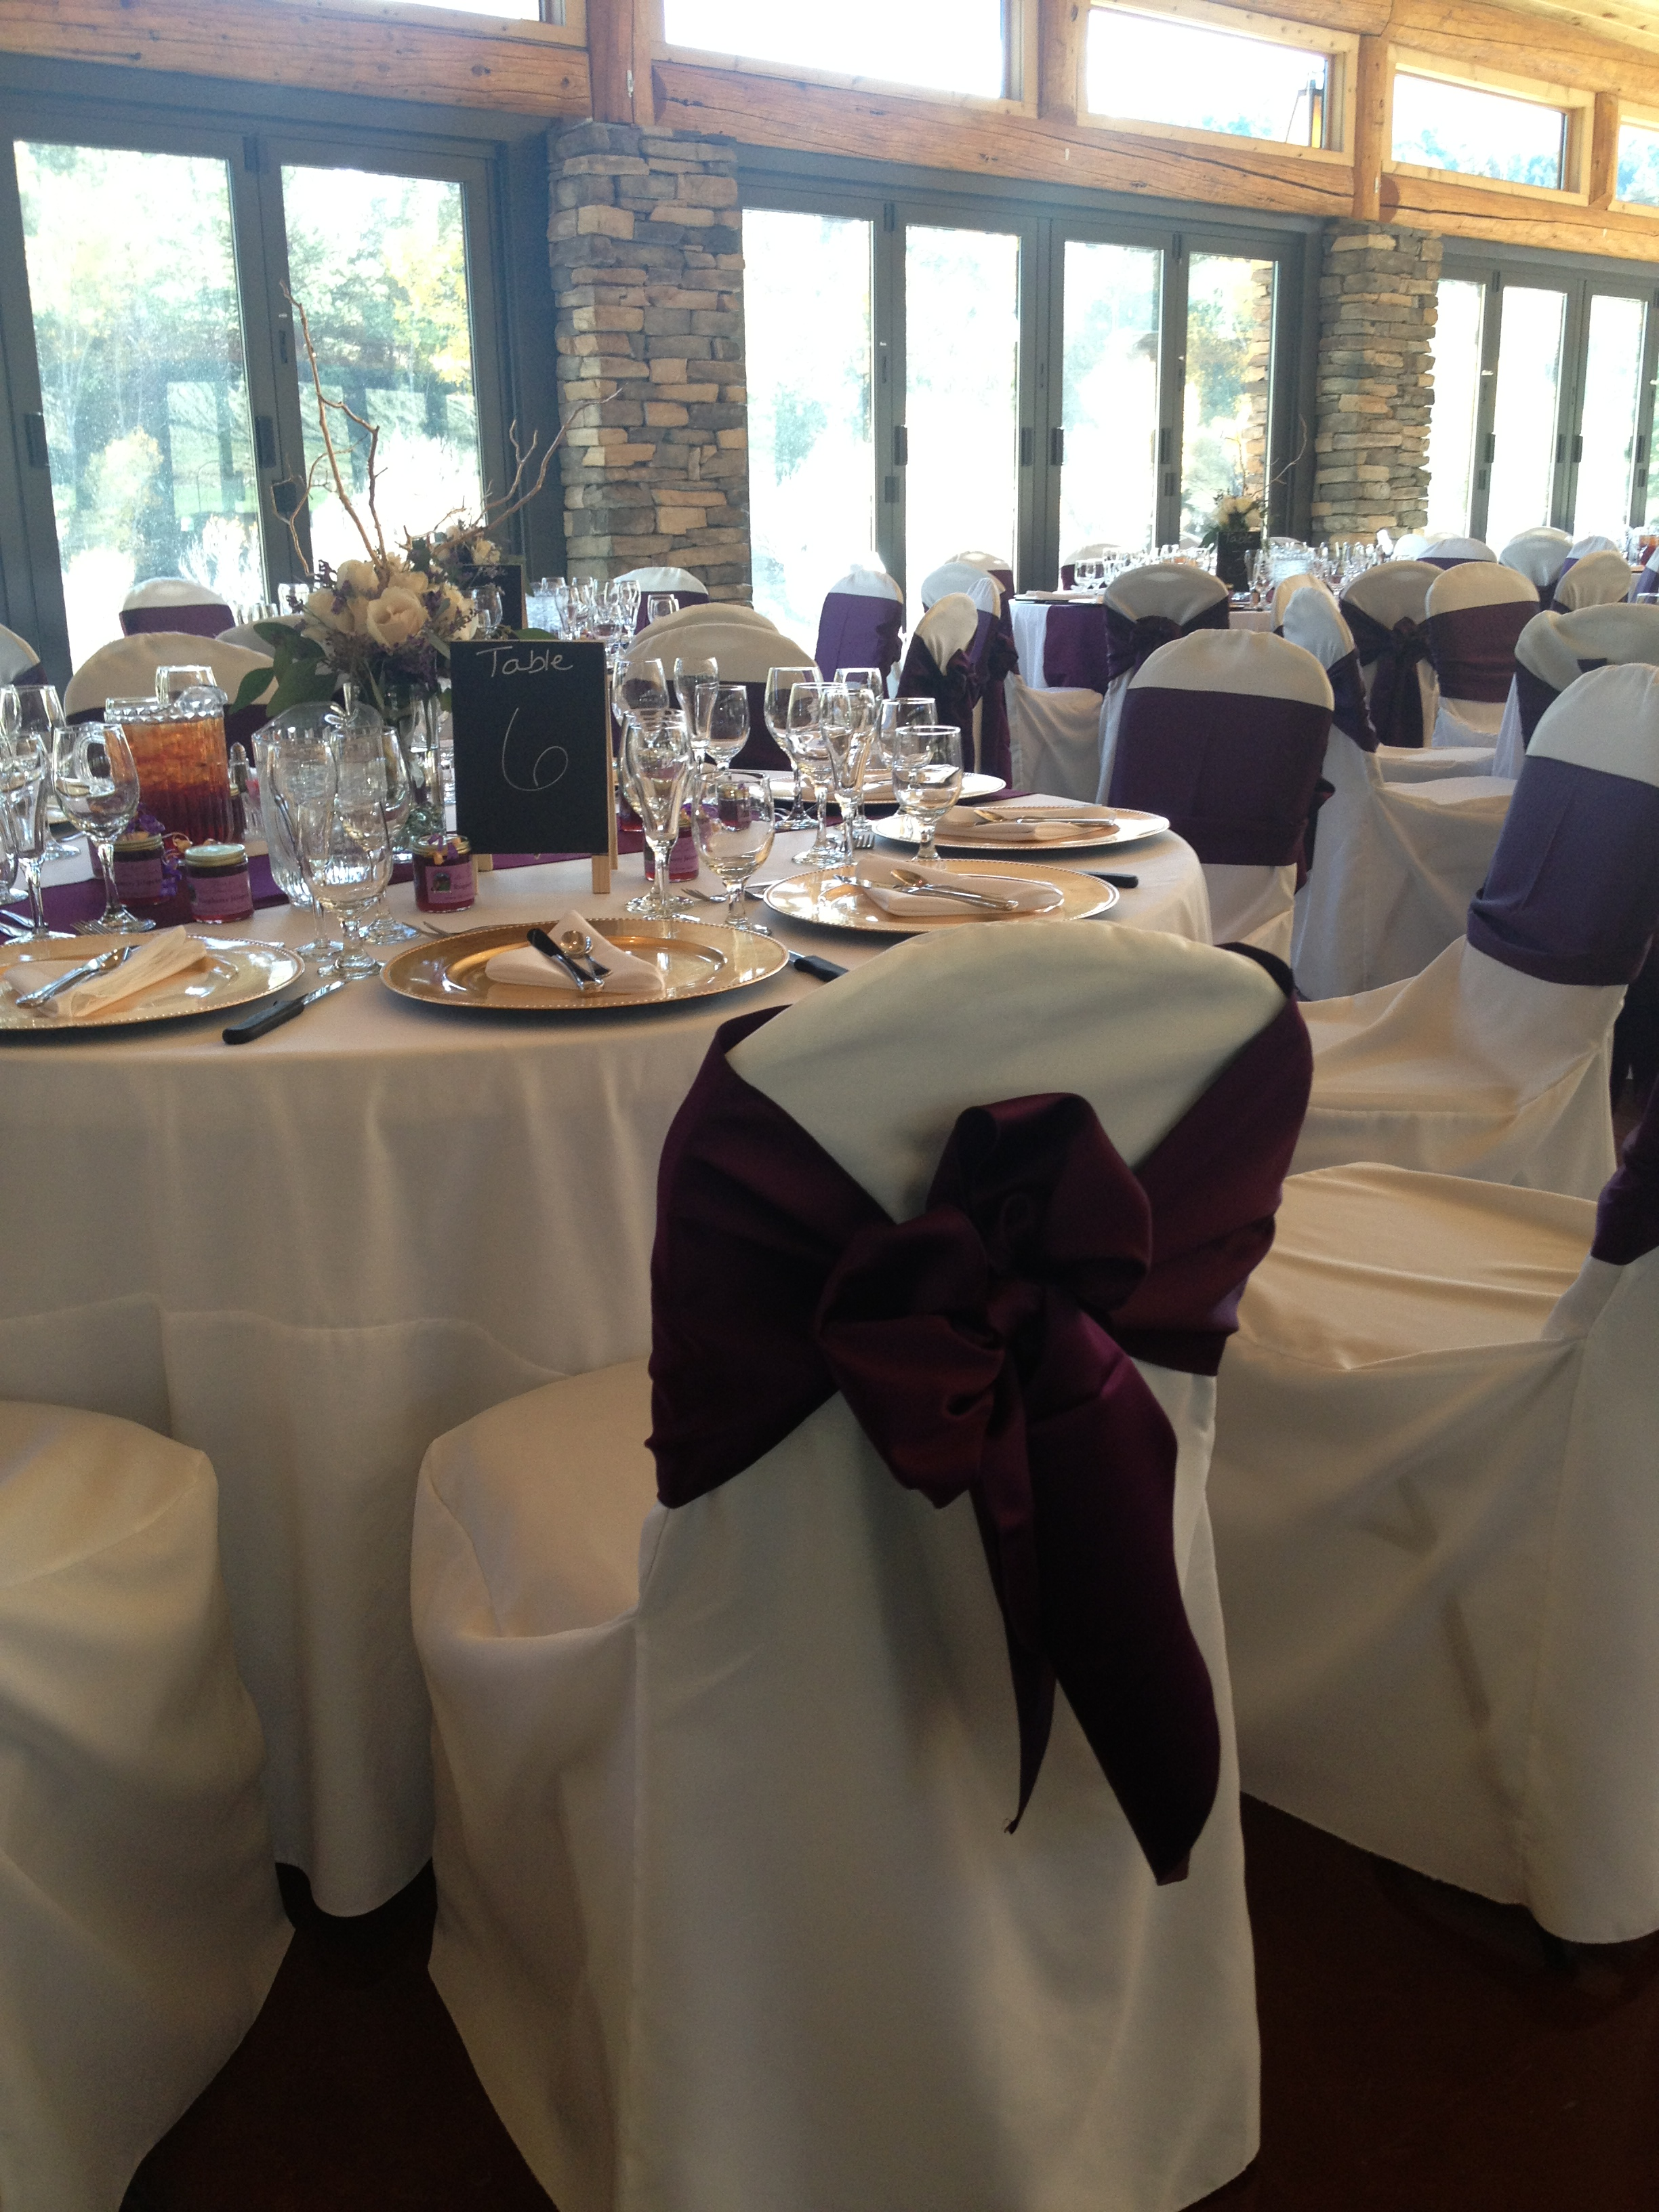 Chair Cover Rental Mt Princeton Hot Springs Settings Event Rental